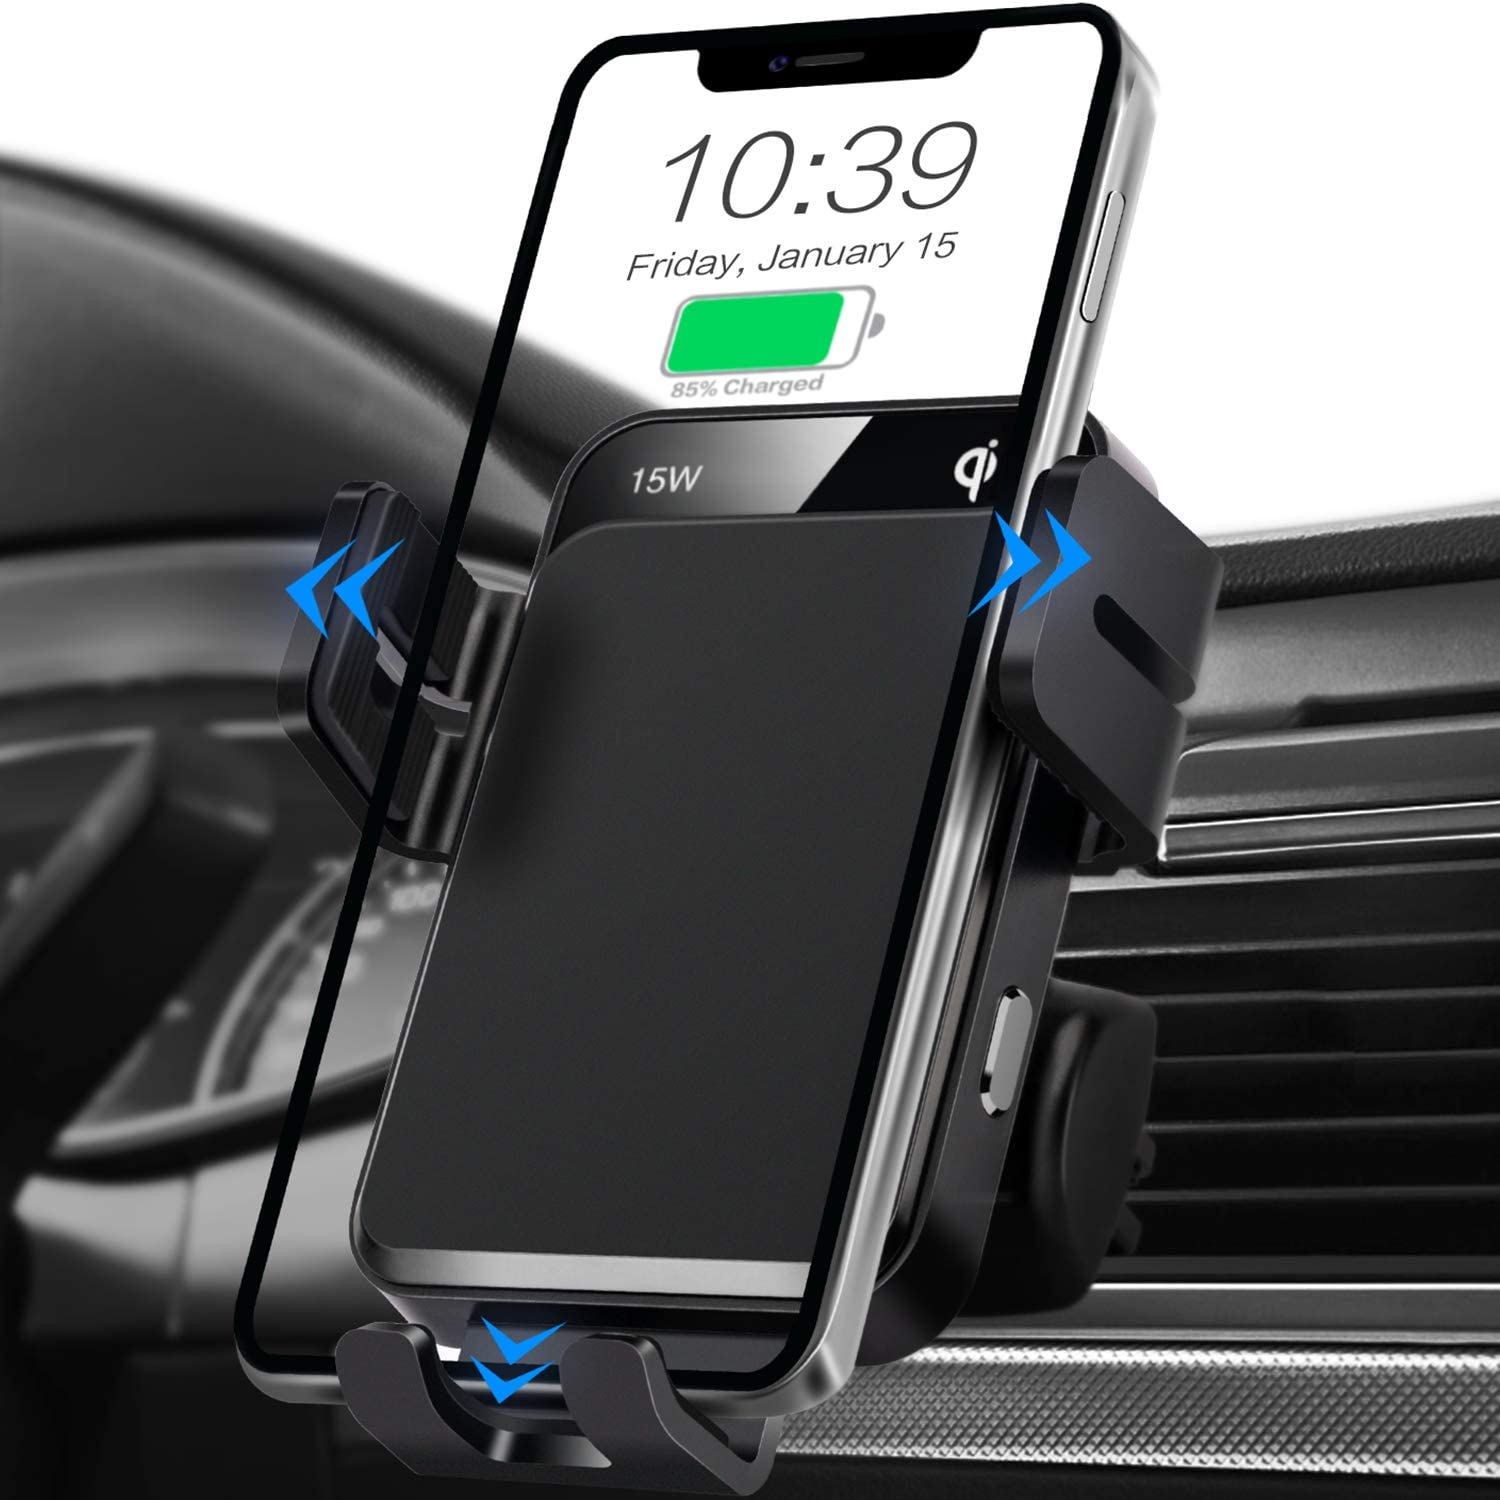 Wireless Car Charger, MOKPR 15W/10W/7.5W Qi Fast Charging Auto-Clamping Car Charger Air Vent Car Phone Holder Mount Compatible with iPhone 12 Pro Max/12 pro/12/11 Series, Samsung Galaxy Series, etc